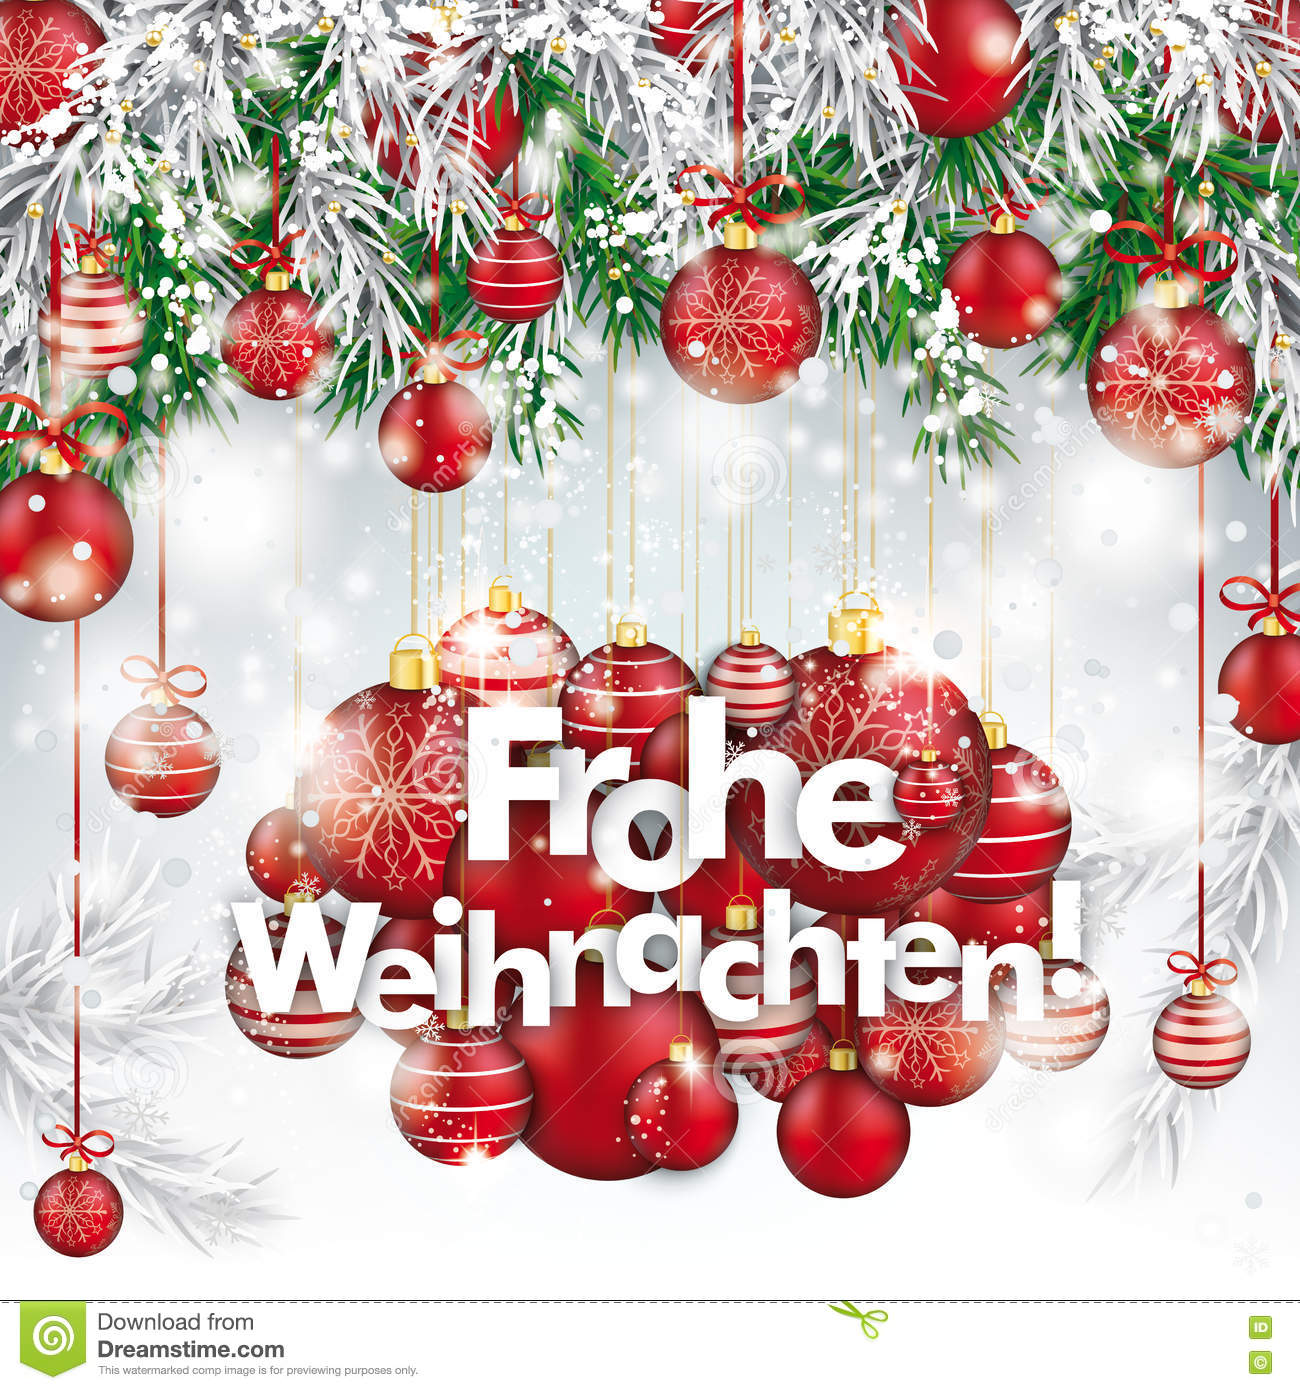 Frohe Weihnachten Tagalog Corporate Greeting Card Designed For The Spanish Speaking Market